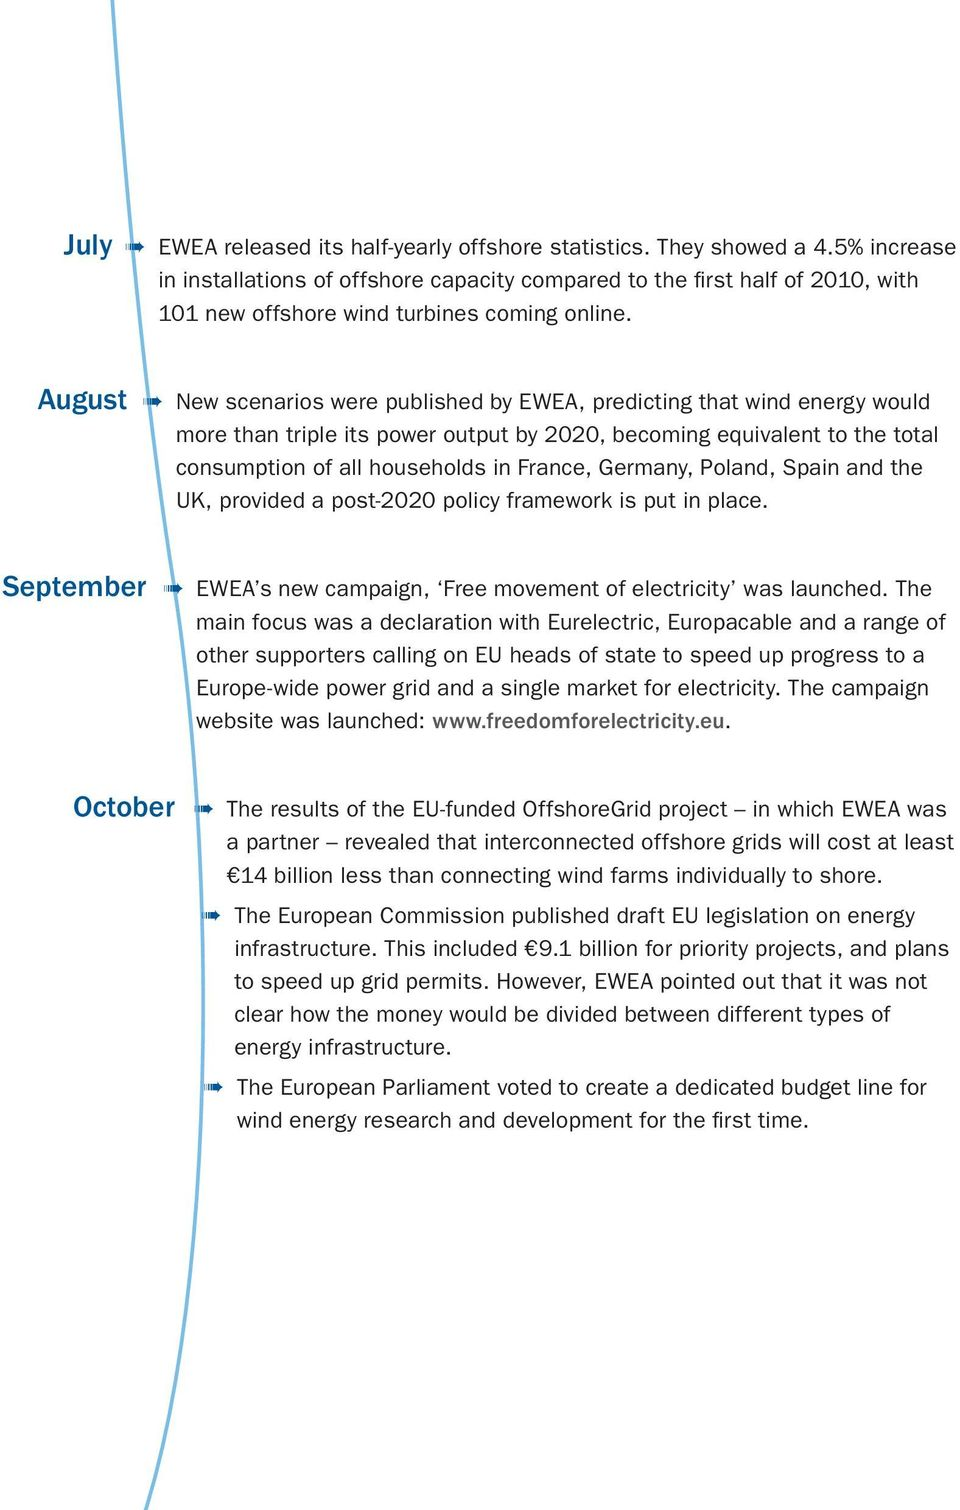 August New scenarios were published by EWEA, predicting that wind energy would more than triple its power output by 2020, becoming equivalent to the total consumption of all households in France,